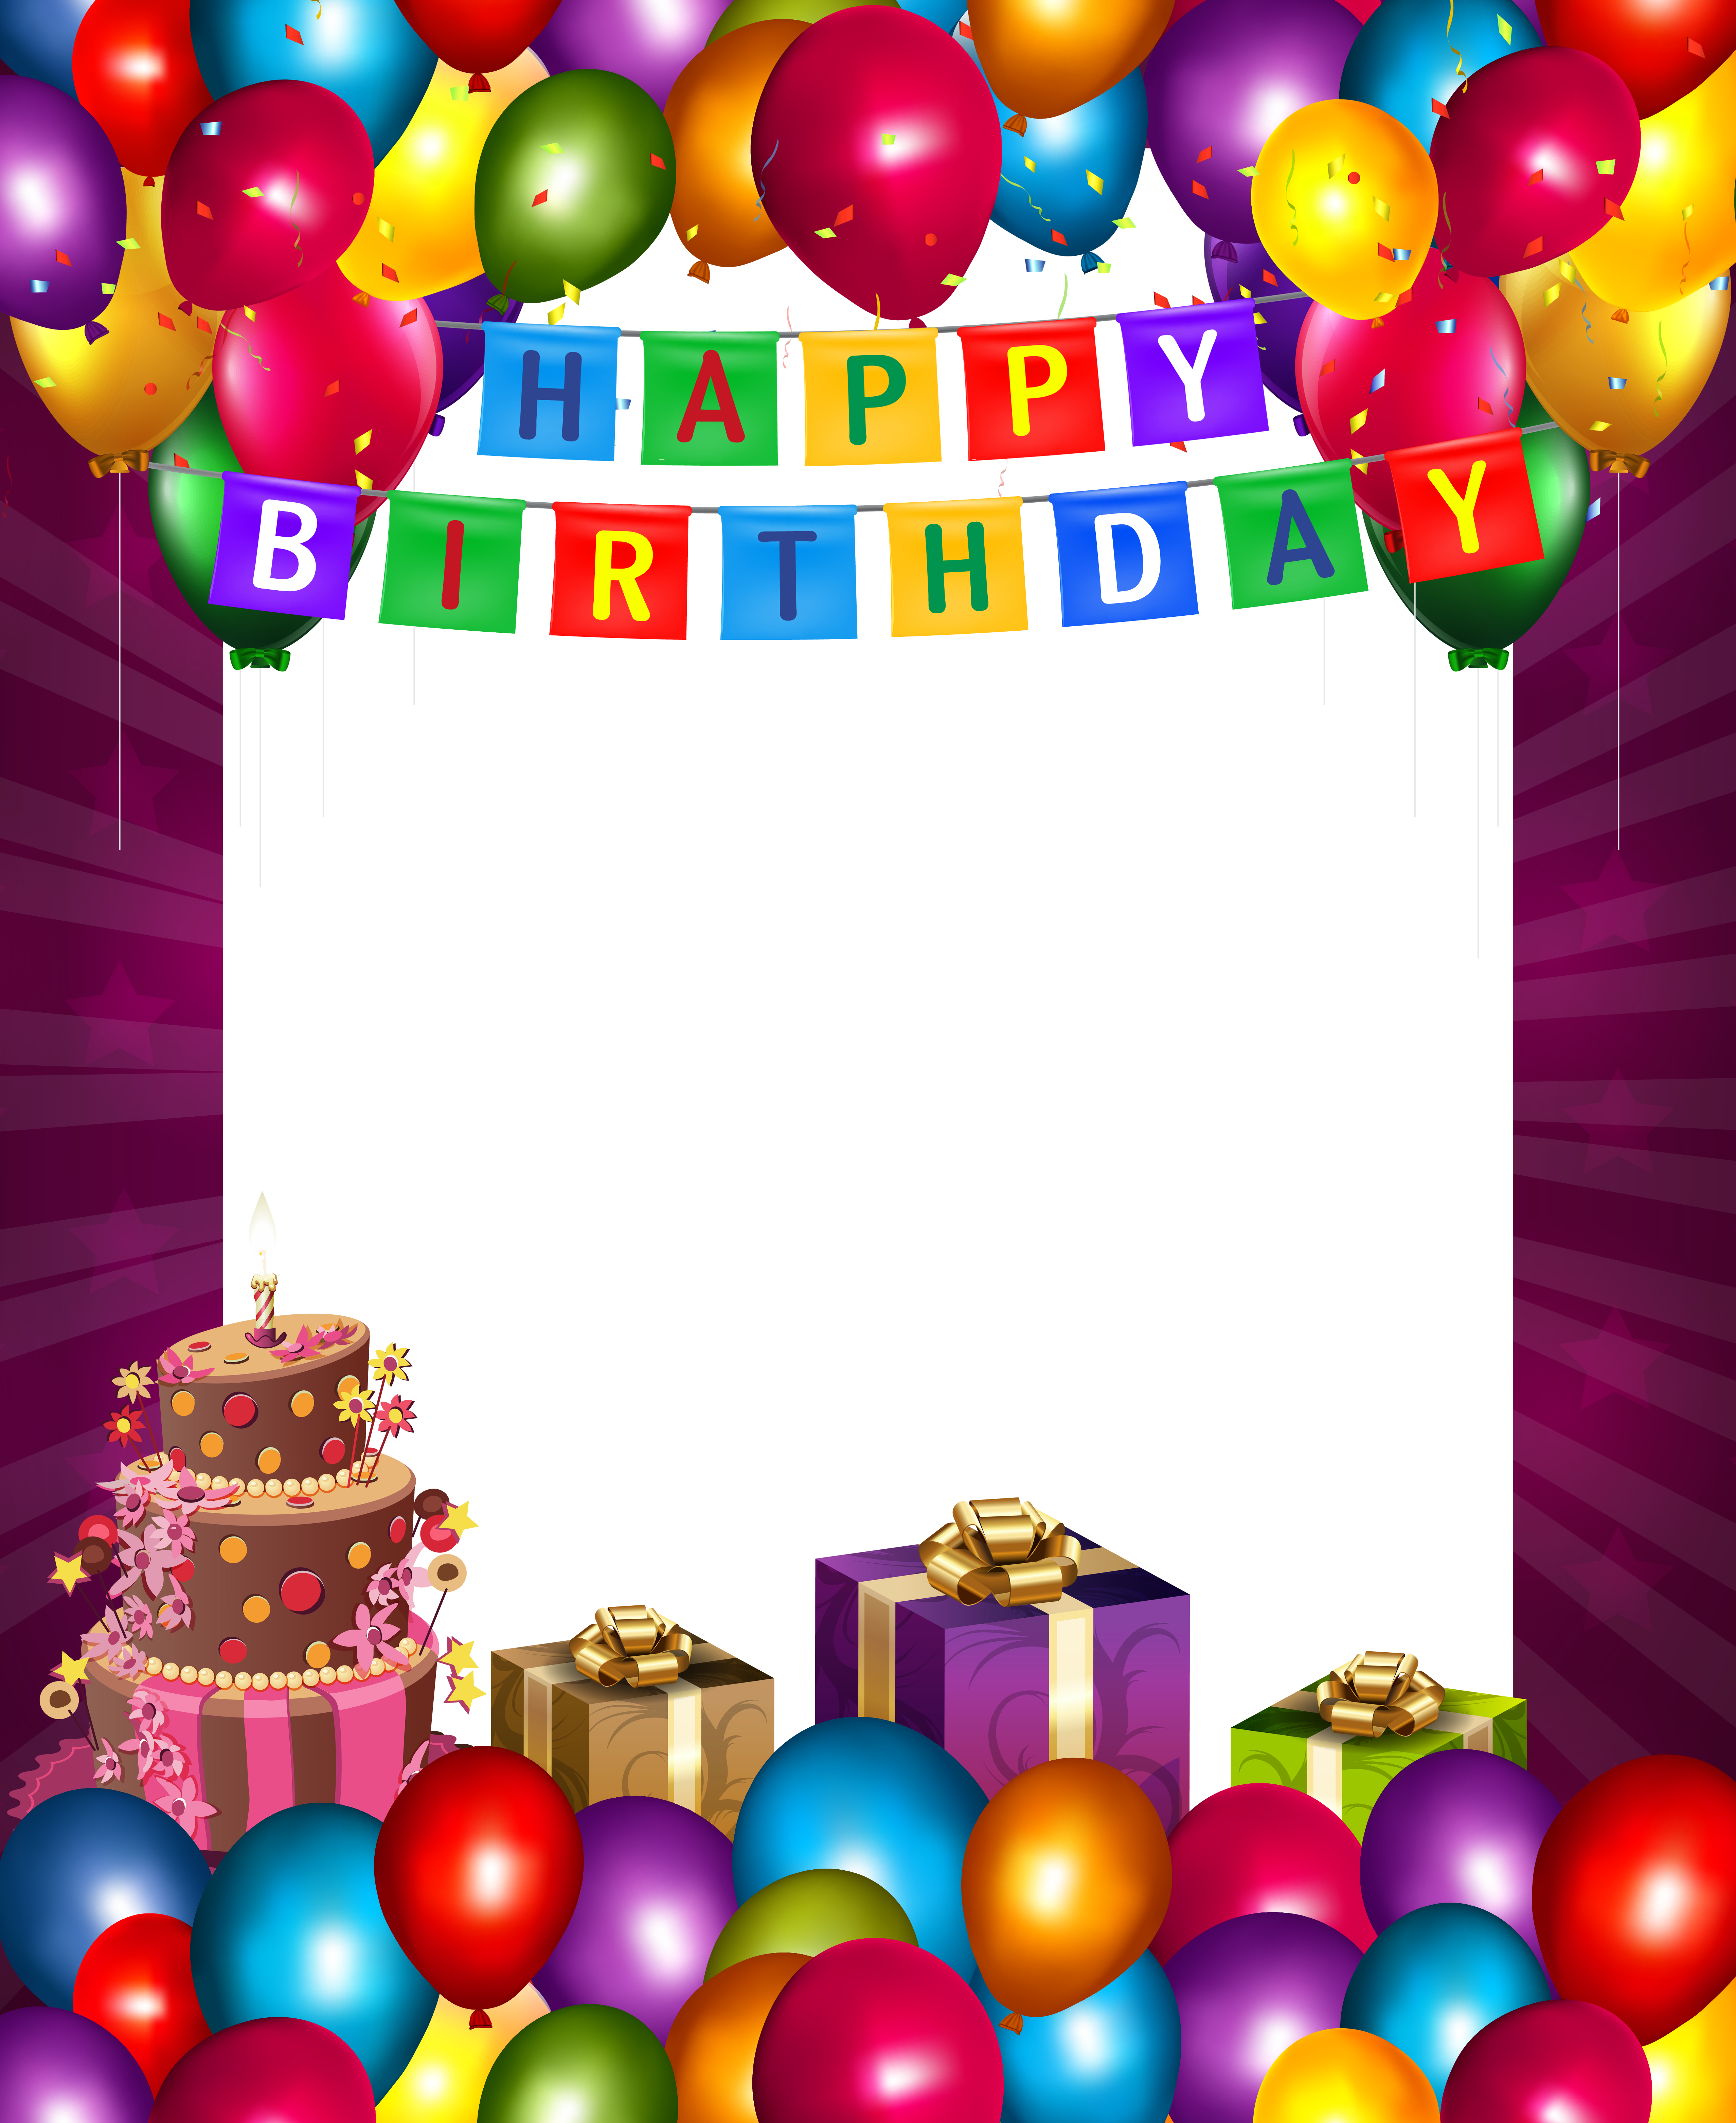 Pin By Raghu On Ideas For The House Birthday Happy